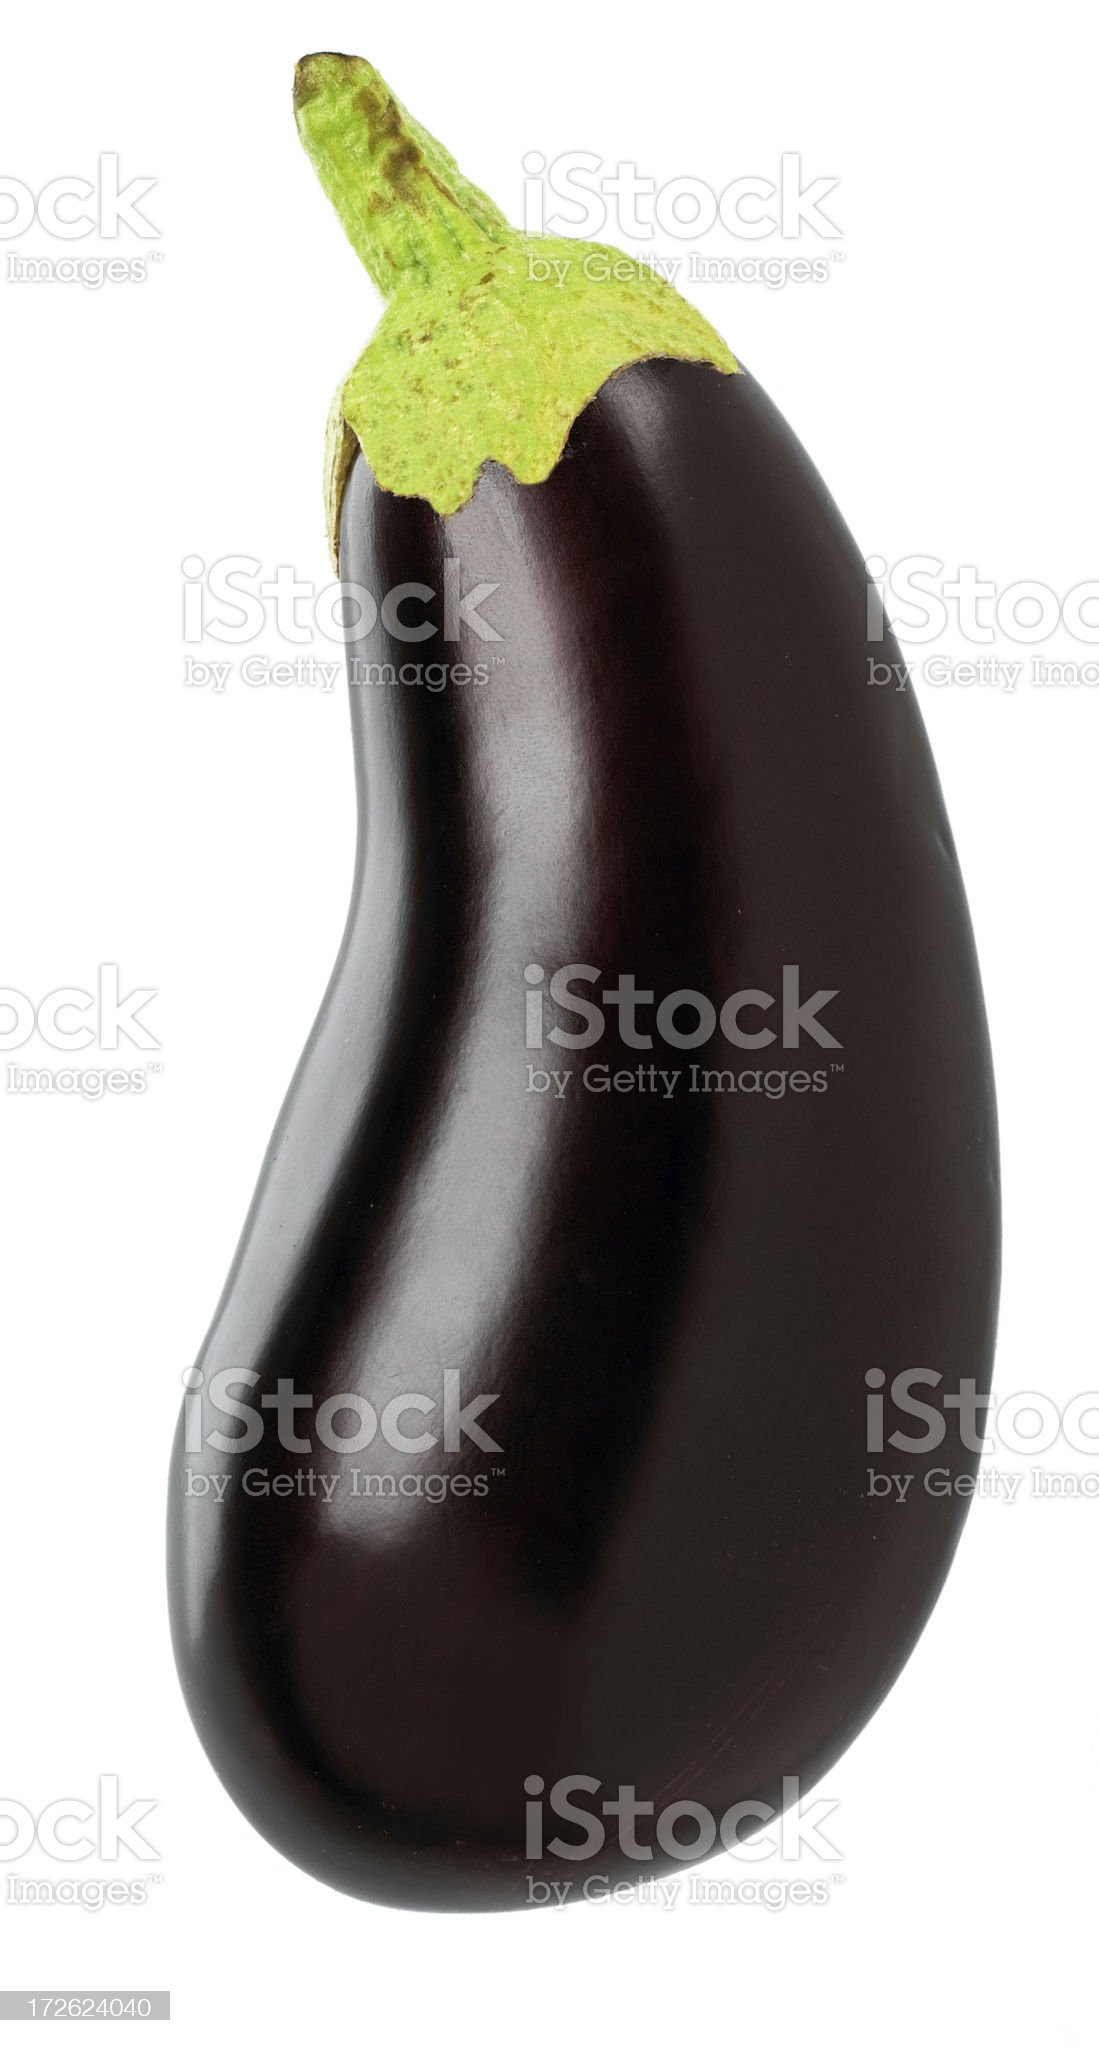 Food-Egg Plant royalty-free stock photo